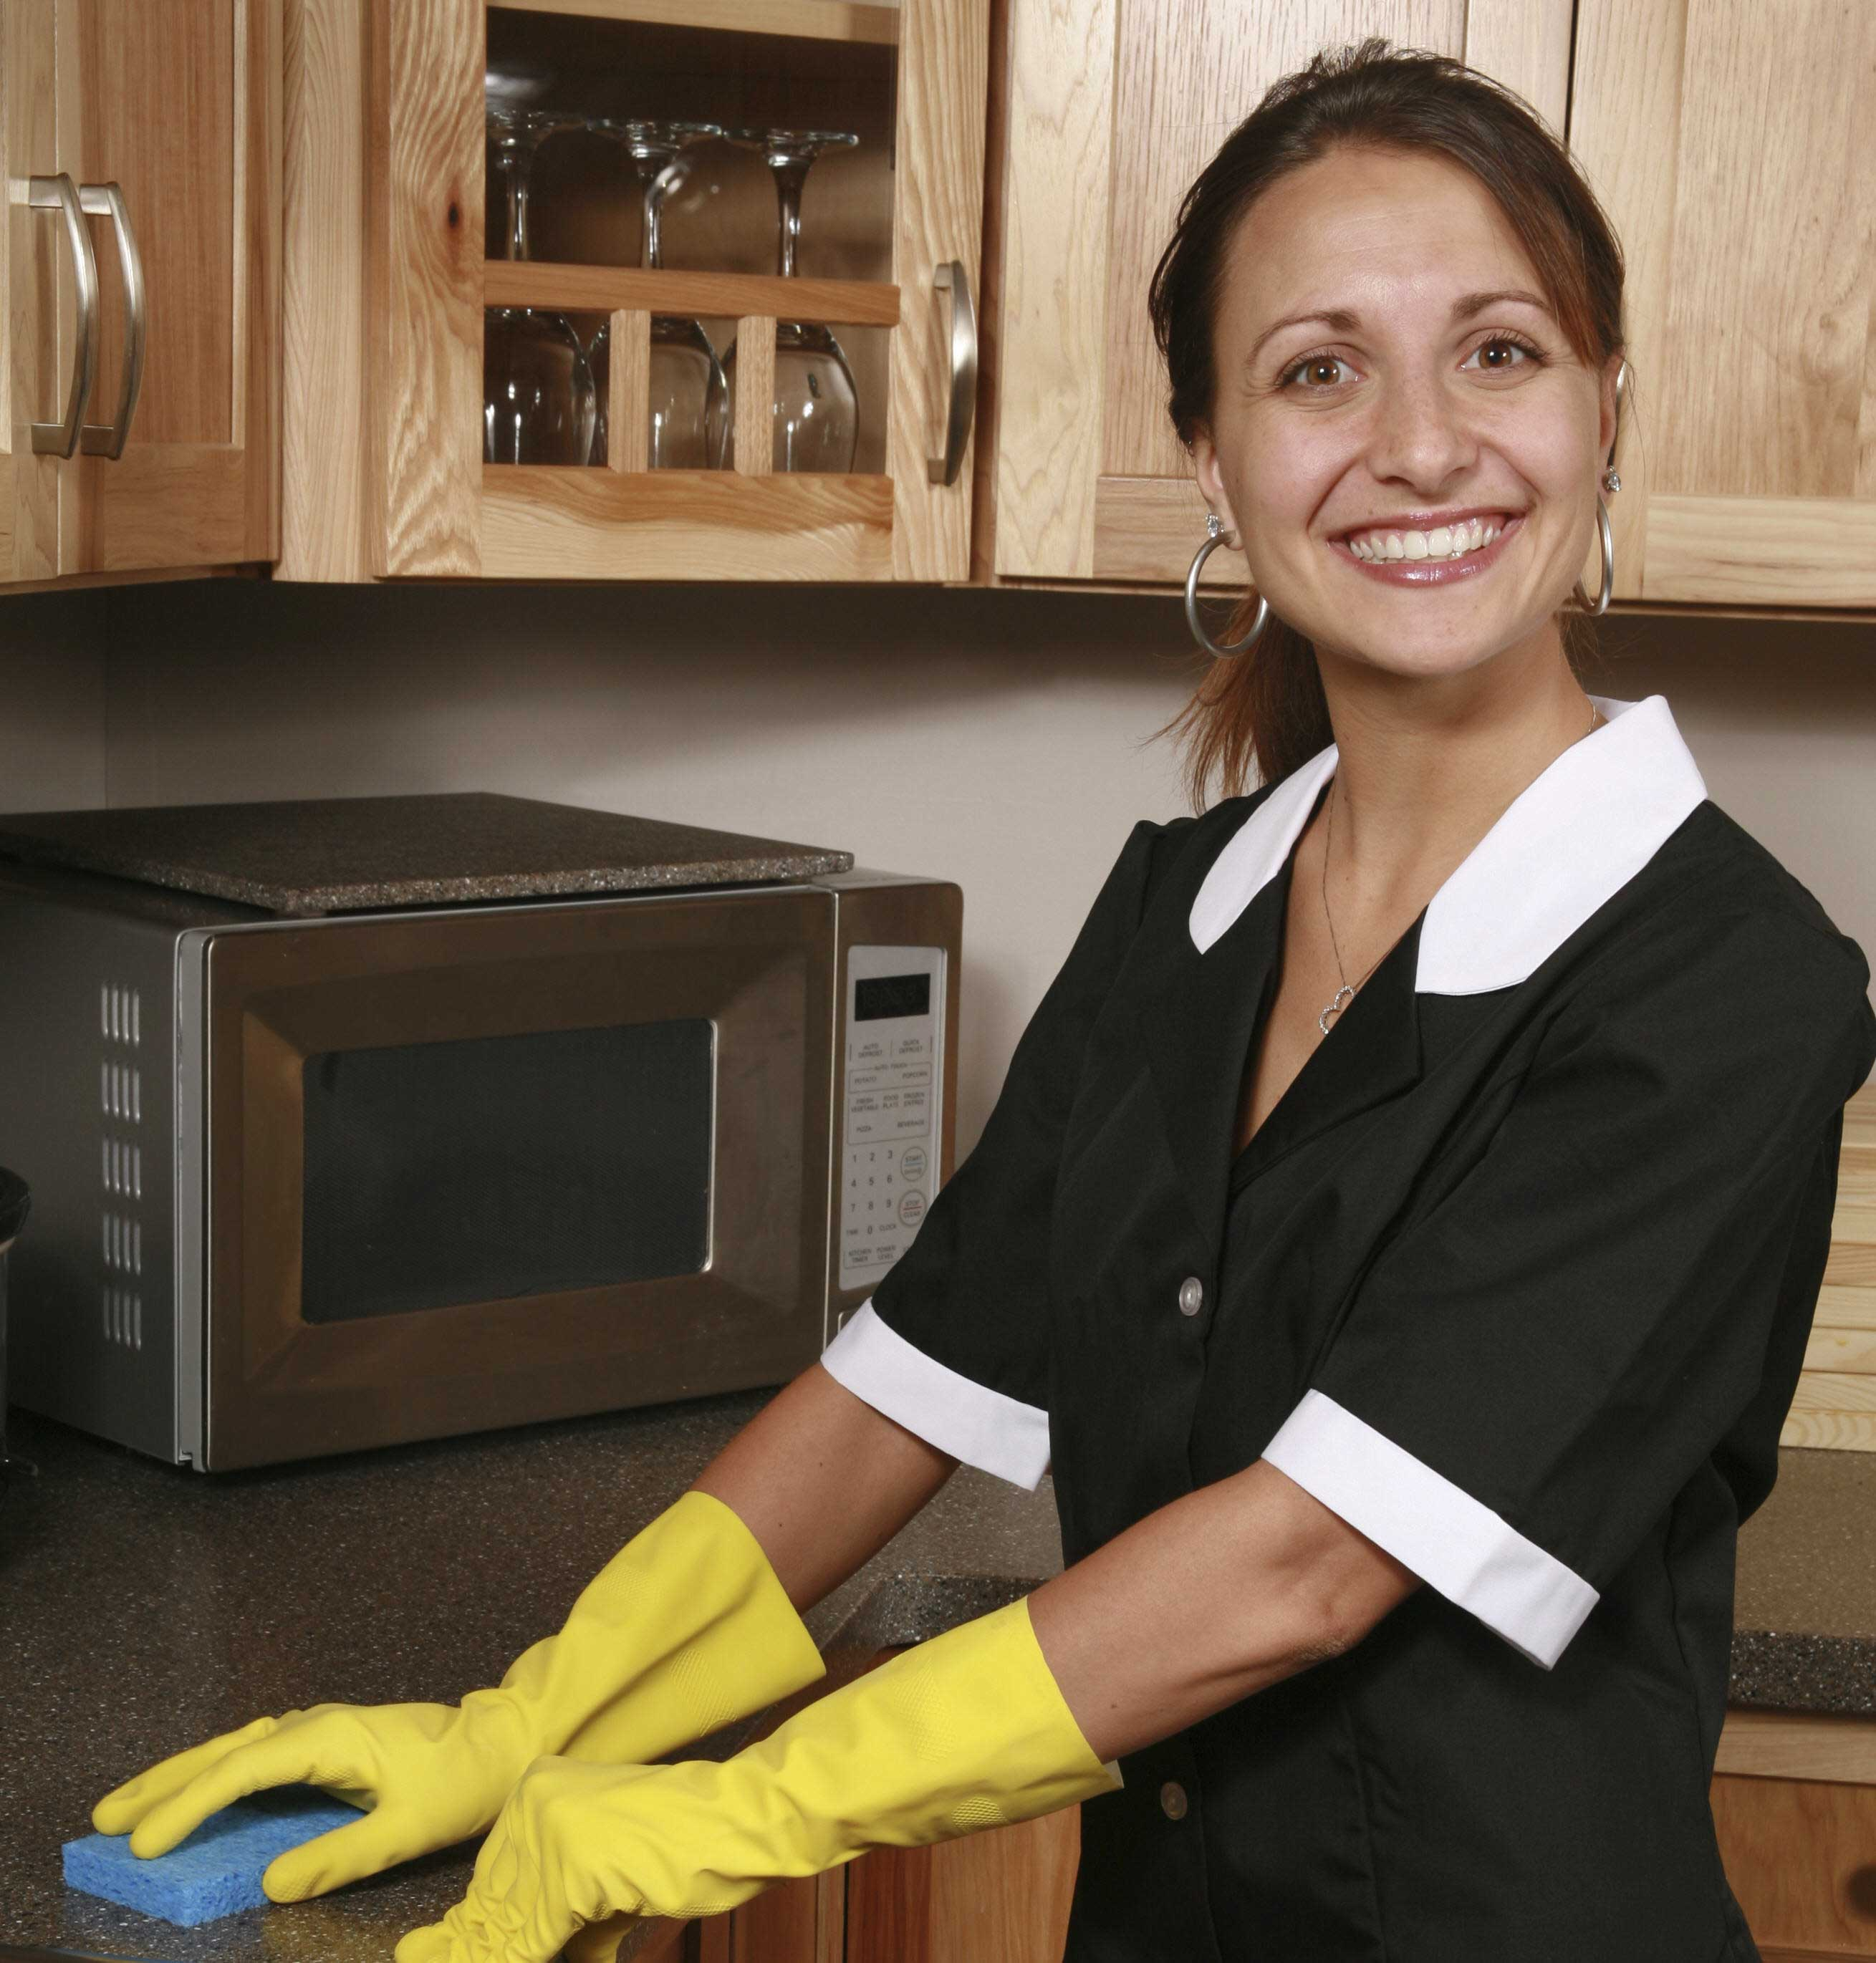 home maid Once the floors in your home are vacuumed there are professional house cleaning and maid services near you that use green cleaning products.